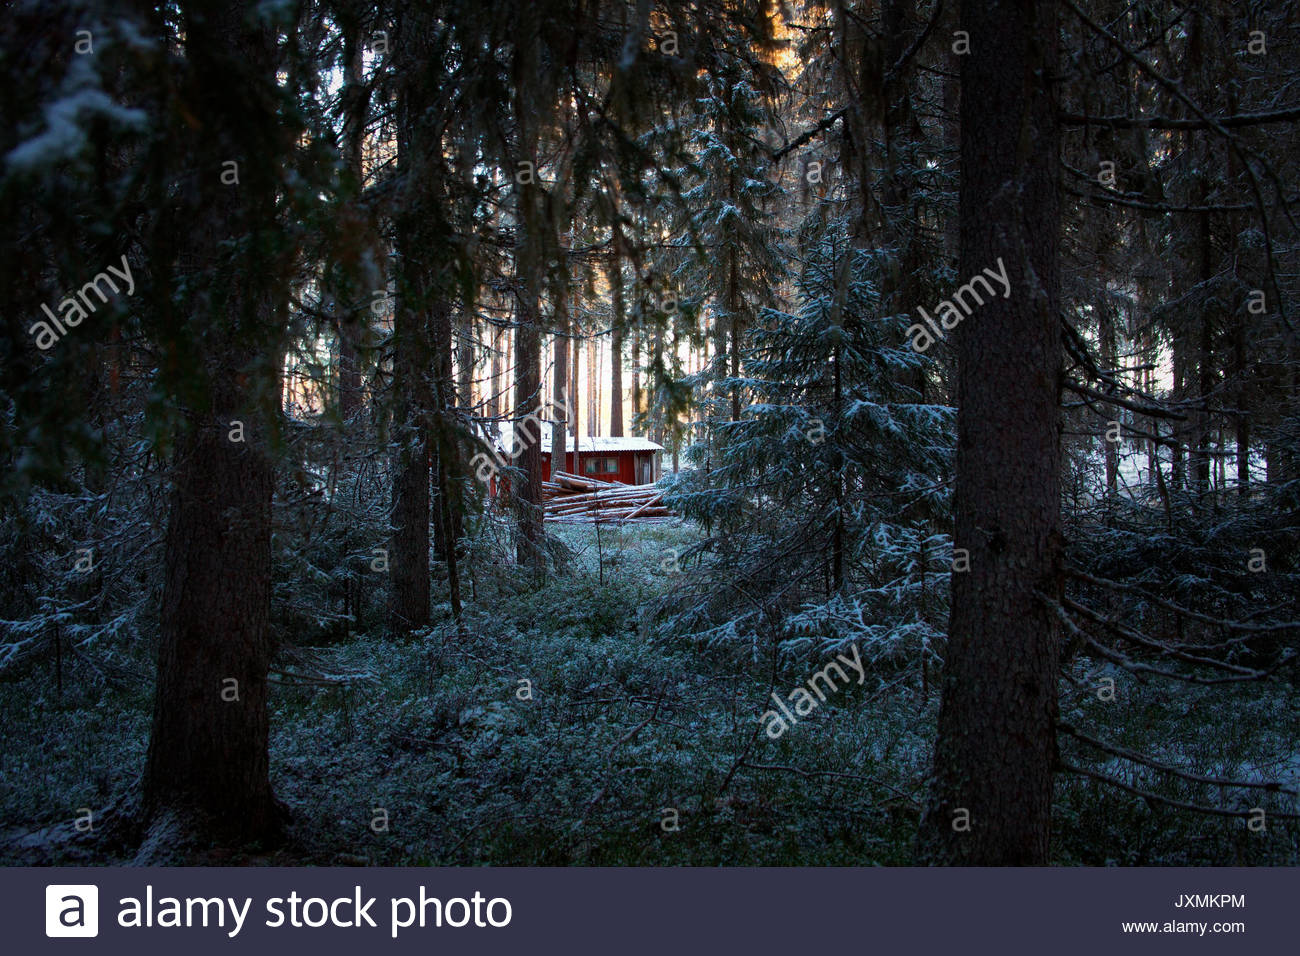 A wooden cottage is standing in snowy forest. - Stock Image